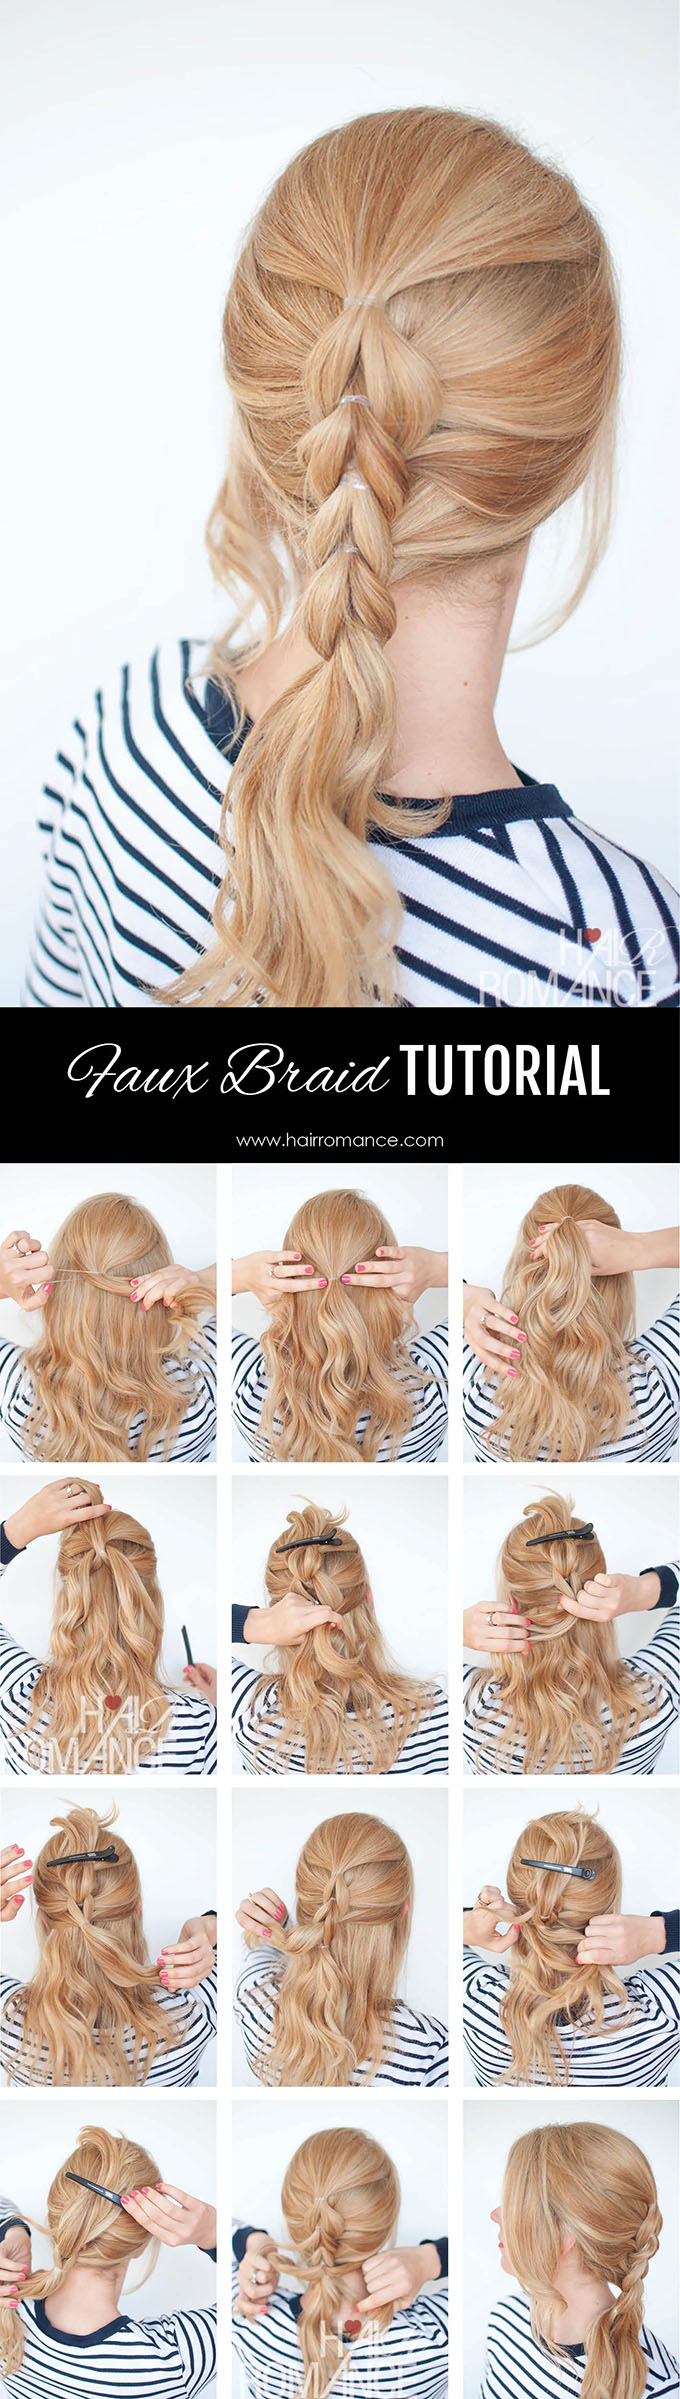 Hair Romance - Pull through braids tutorial 2